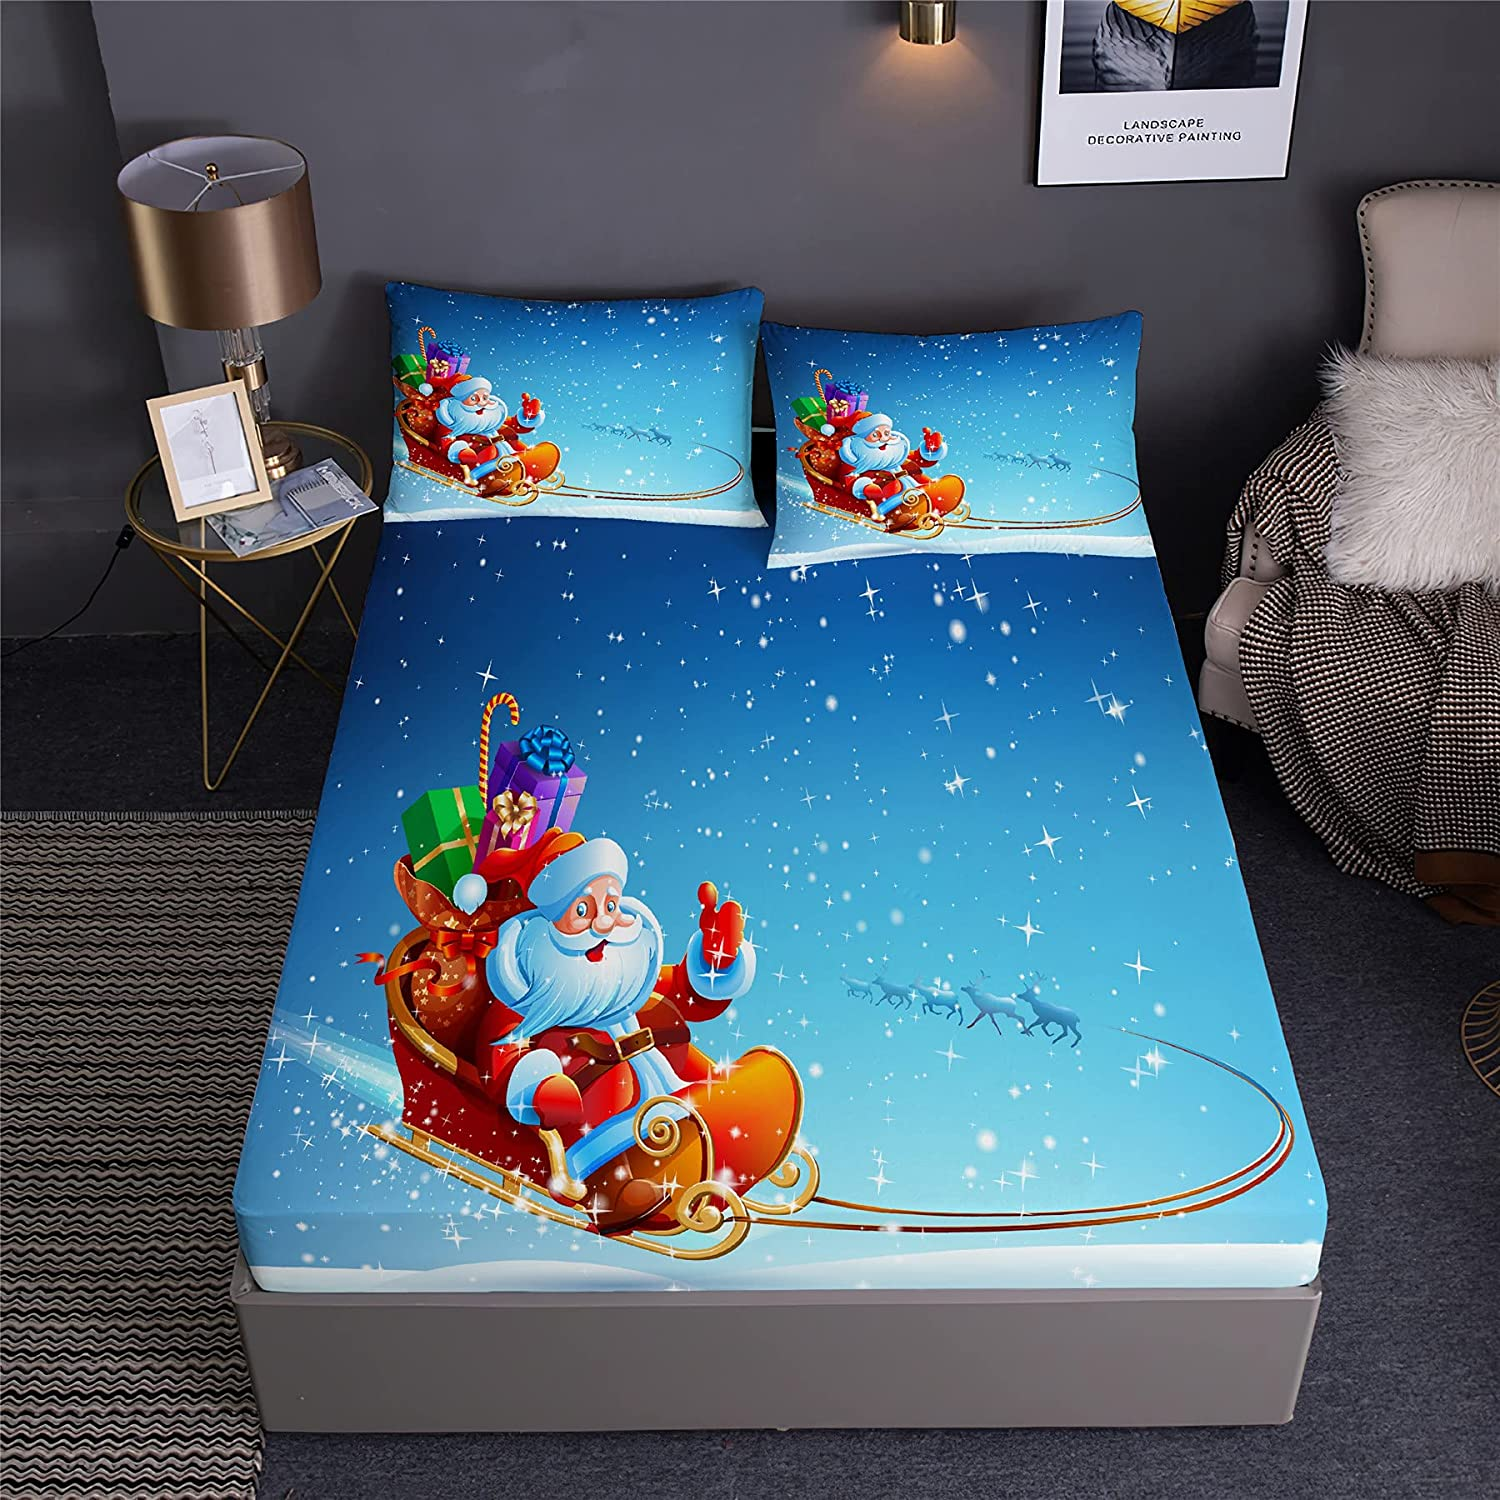 DDD PLUS Sledge Popular products Santa Challenge the lowest price Christmas Pillowshams Sheet with Fitted Tw